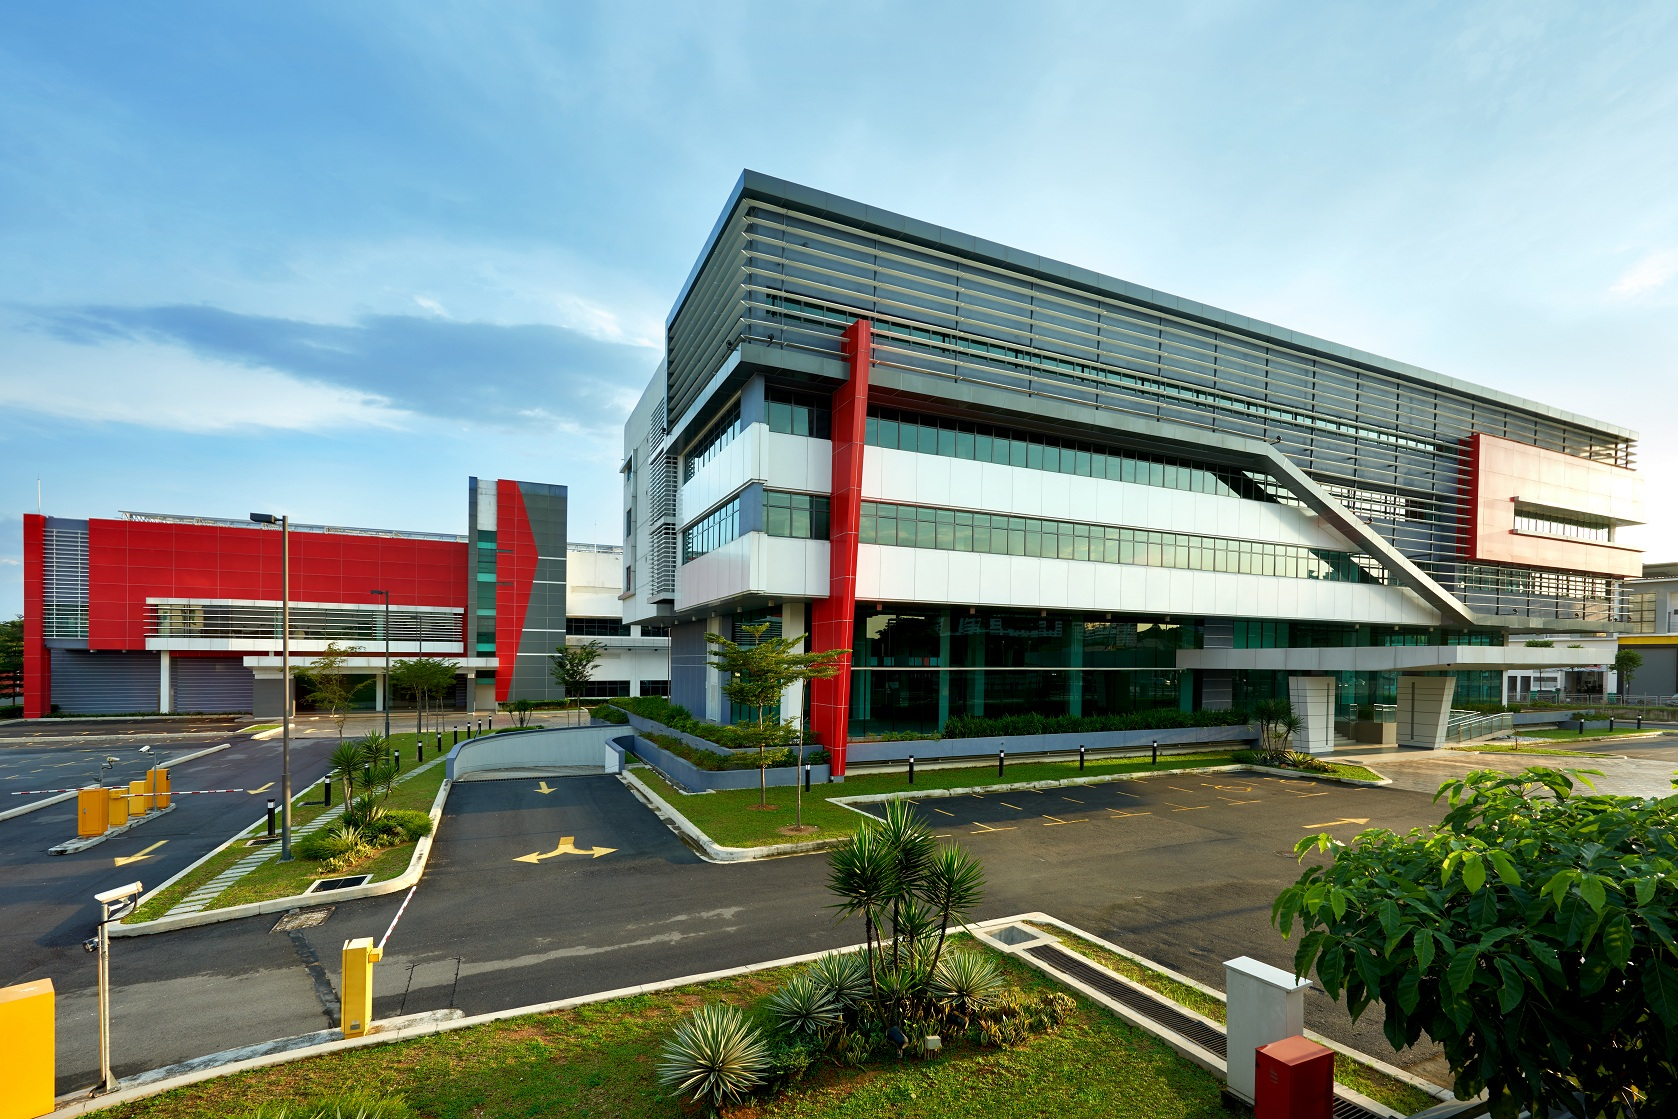 Axis REIT's Axis Business Campus in the Petaling Jaya industrial precinct . (Photo: Axis REIT)